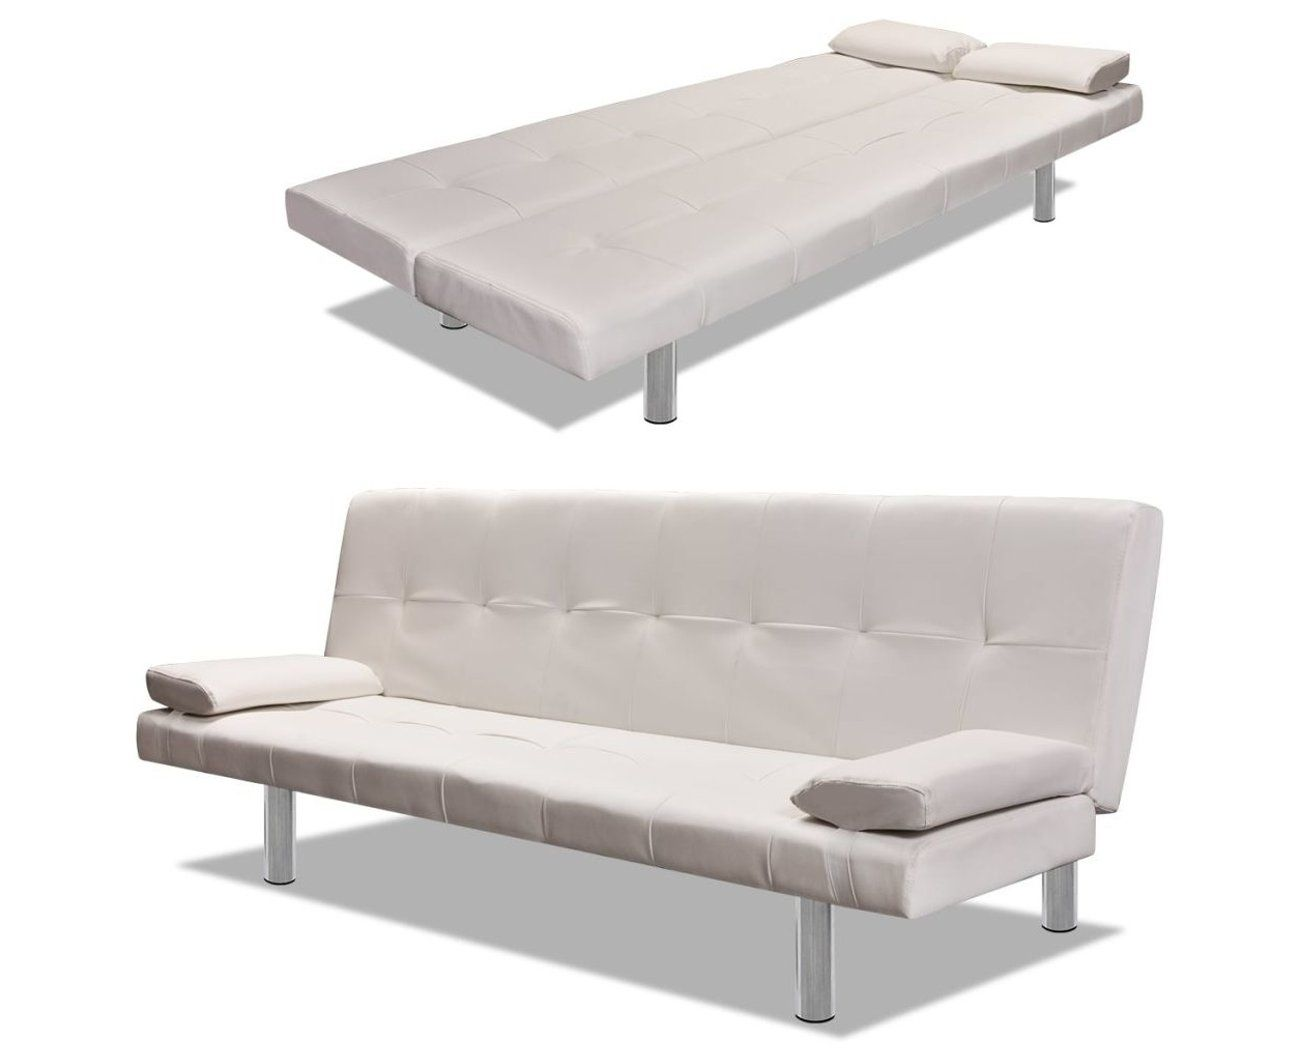 Divano Letto Pelle Bianca.Sofa Bed With Two Pillows Artificial Leather Adjustable Cream